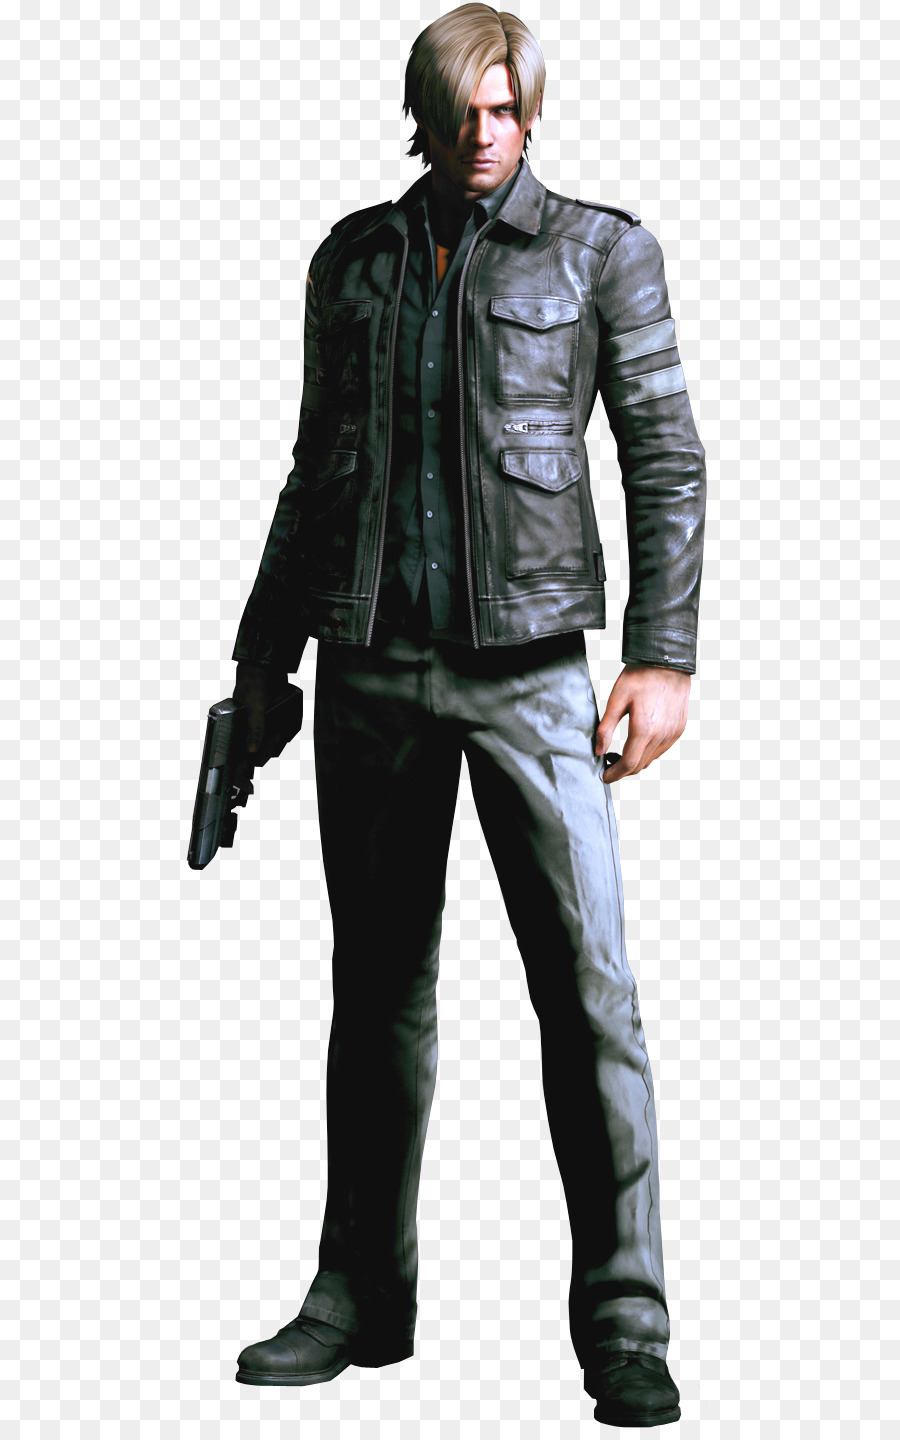 Resident Evil 6 Jacket Png Download 533 1438 Free Transparent